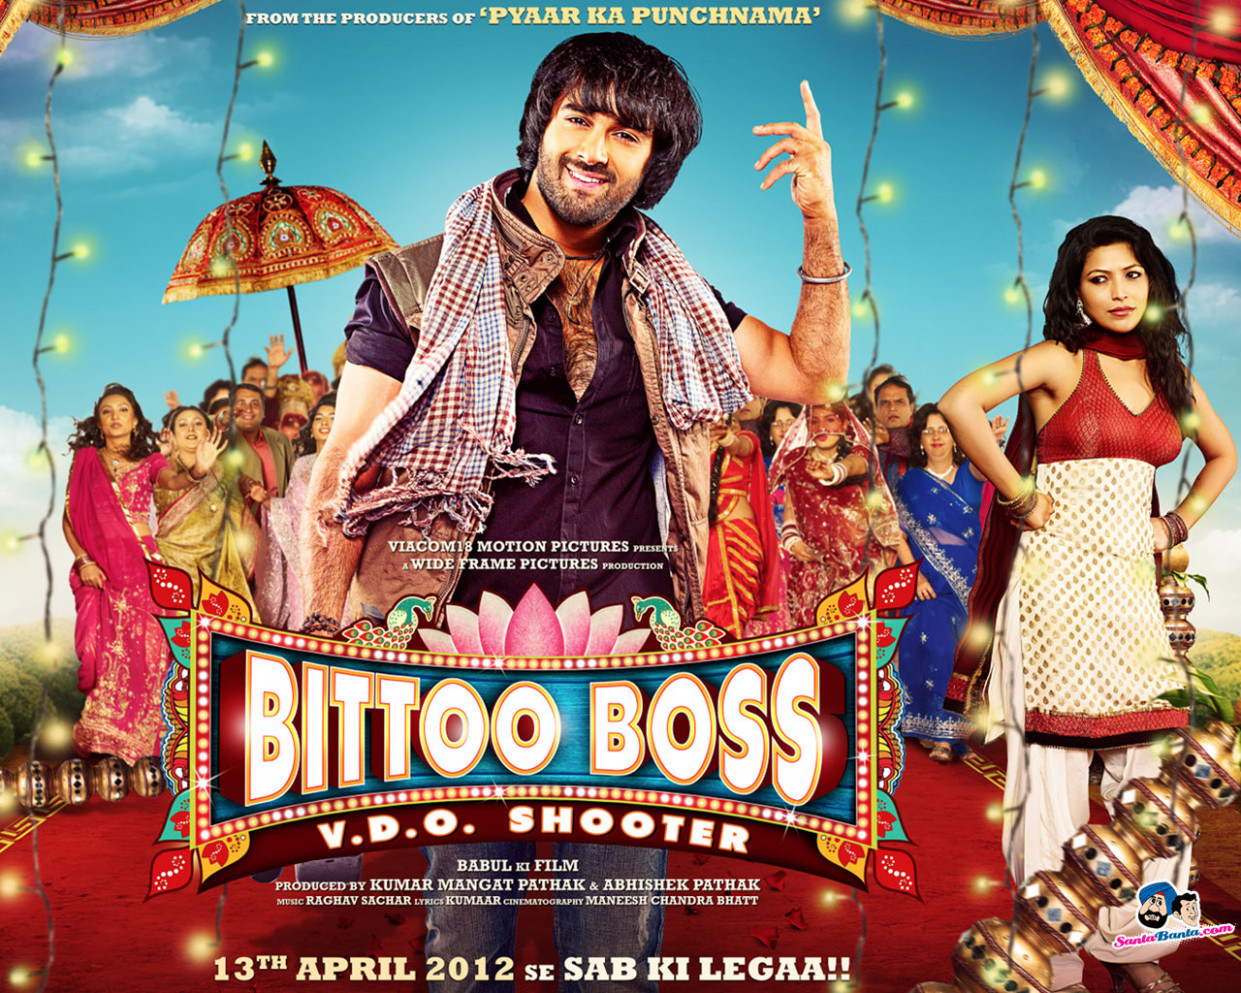 New Bollywood Movie Bittoo Boss HD Wallpapers Desktop Free ...